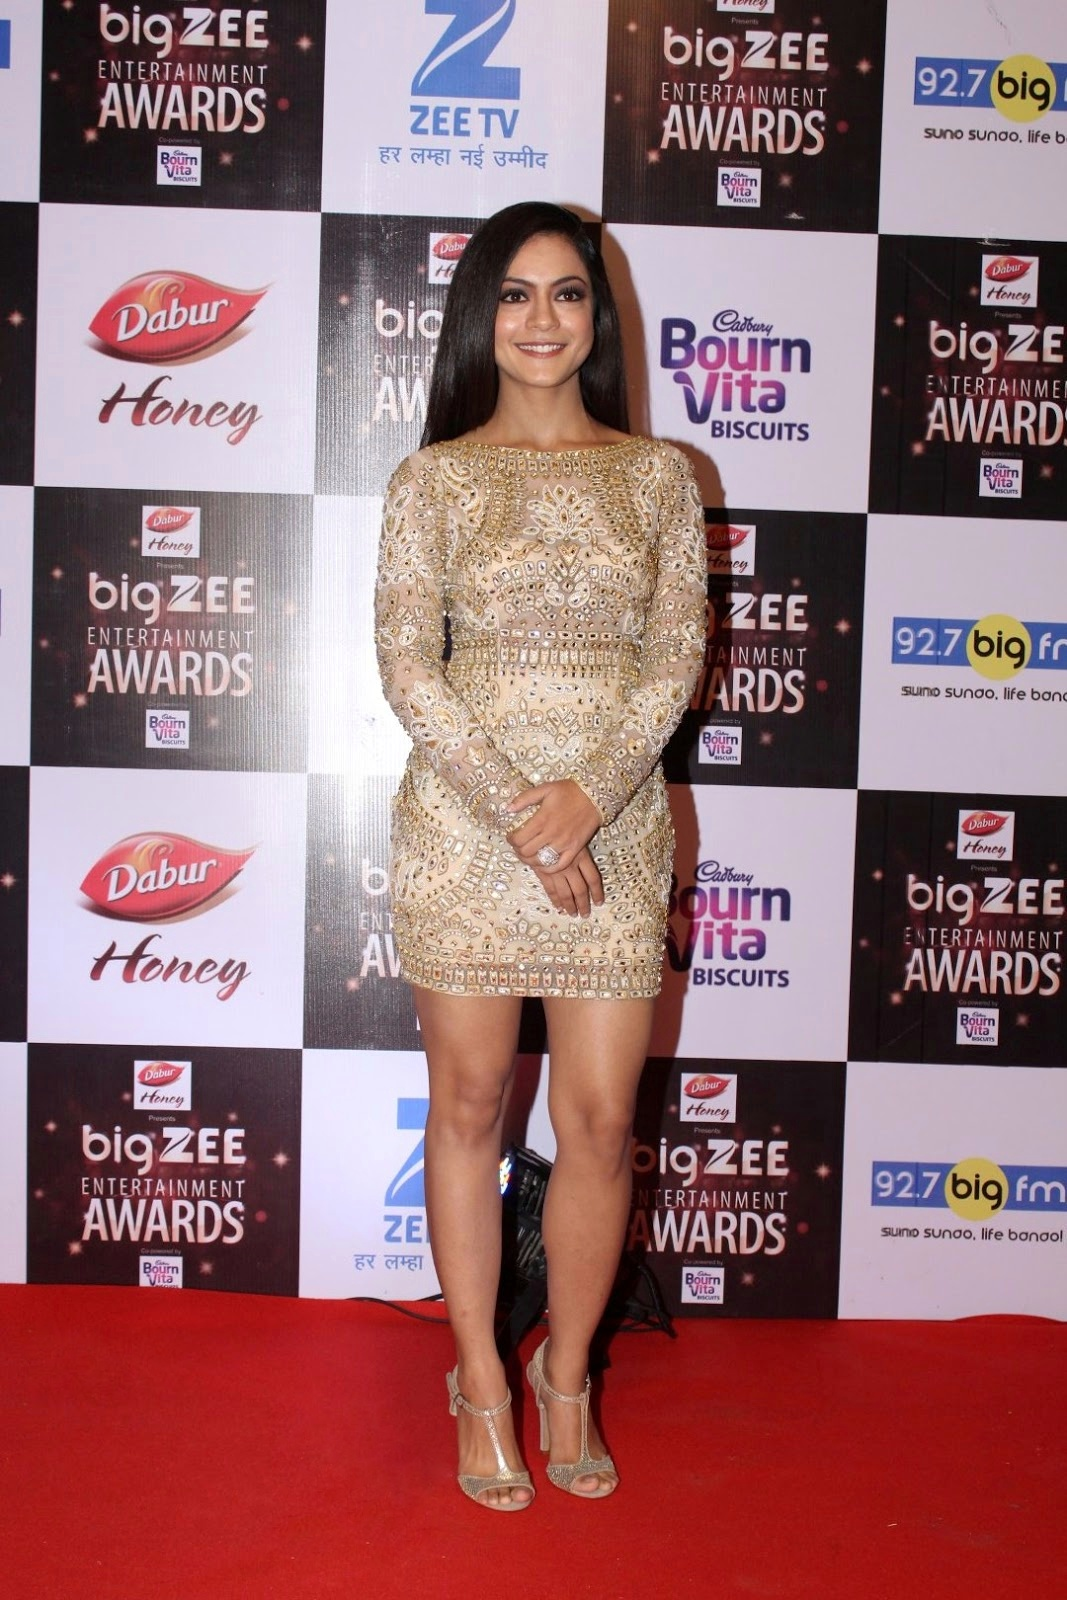 all bollywood glam girls at Big Zee Entertainment Awards 2017